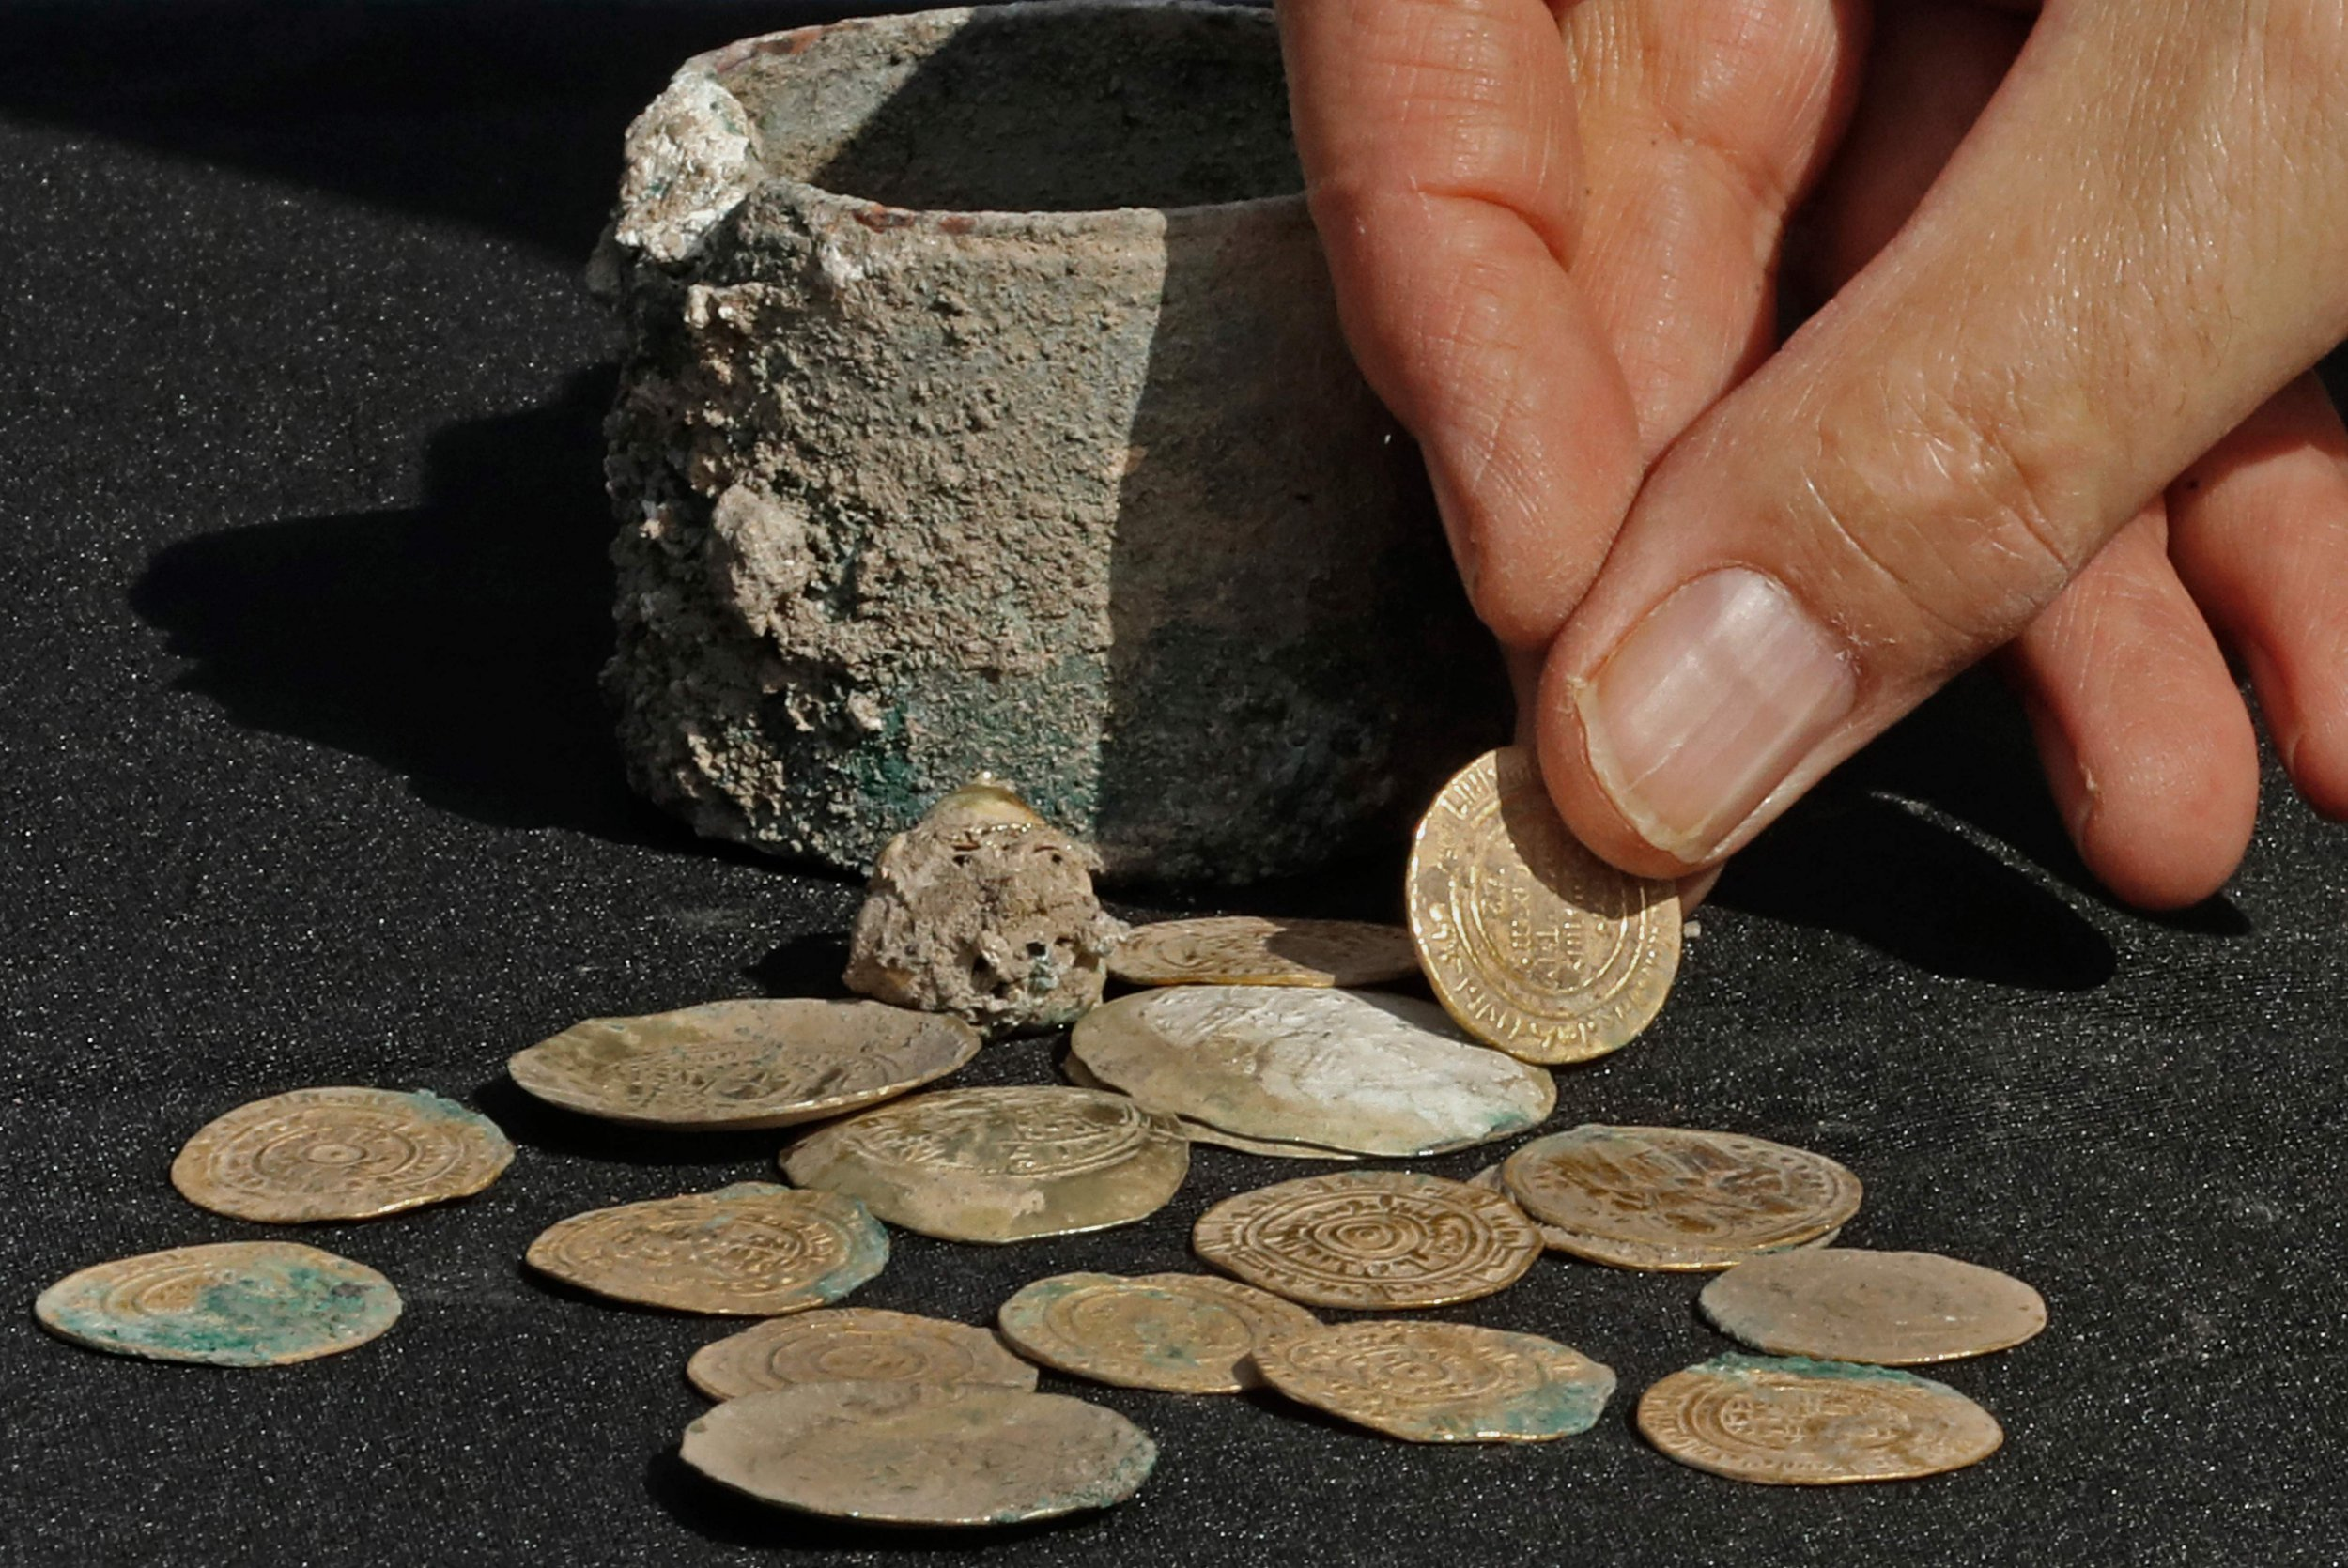 A picture taken on December 3, 2018, shows ancient gold coins and an earring recently uncovered at an excavation site in the Israeli Mediterranean town of Caesarea. - A treasure of 24 rare gold coins consisting of 18 Fatimid dinars, which were the standard local currency during that time (909-1171), as well as six are Byzantine coins, which include five dating to the era of Byzantine Emperor Michael VII Doukas (1071-1078), was recently uncovered in Caesarea. (Photo by JACK GUEZ / AFP)JACK GUEZ/AFP/Getty Images